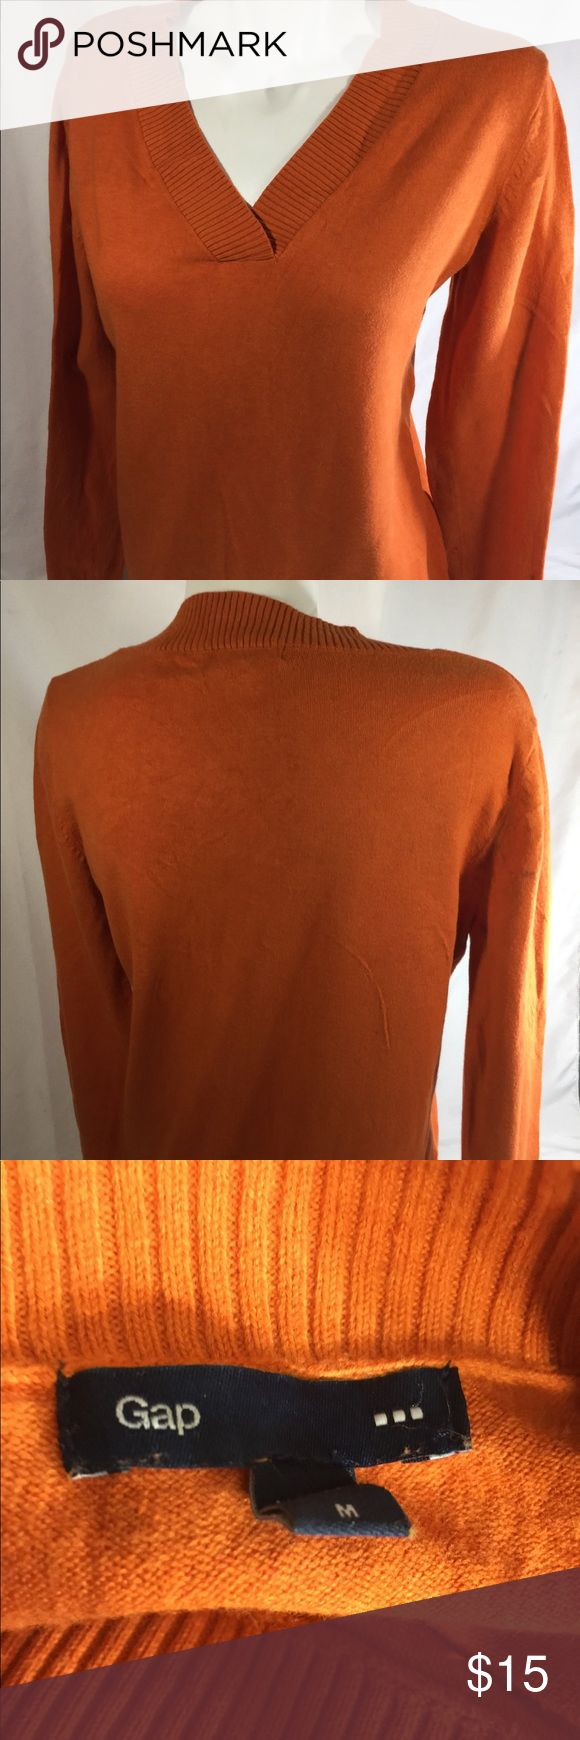 Gap Women Orange Blouse Long Sleeve V-neck  Size M Length top to bottom 25 inches  Chest armpit to armpit 19 inches  Size M  Measurement laying down  Best offer  Any questions let us know thank you  Bin 108# 4  Little stain on the back washable   Gap Women Orange Blouse Long Sleeve V-neck Thin Fabric Read Close Detail Size M GAP Tops Blouses